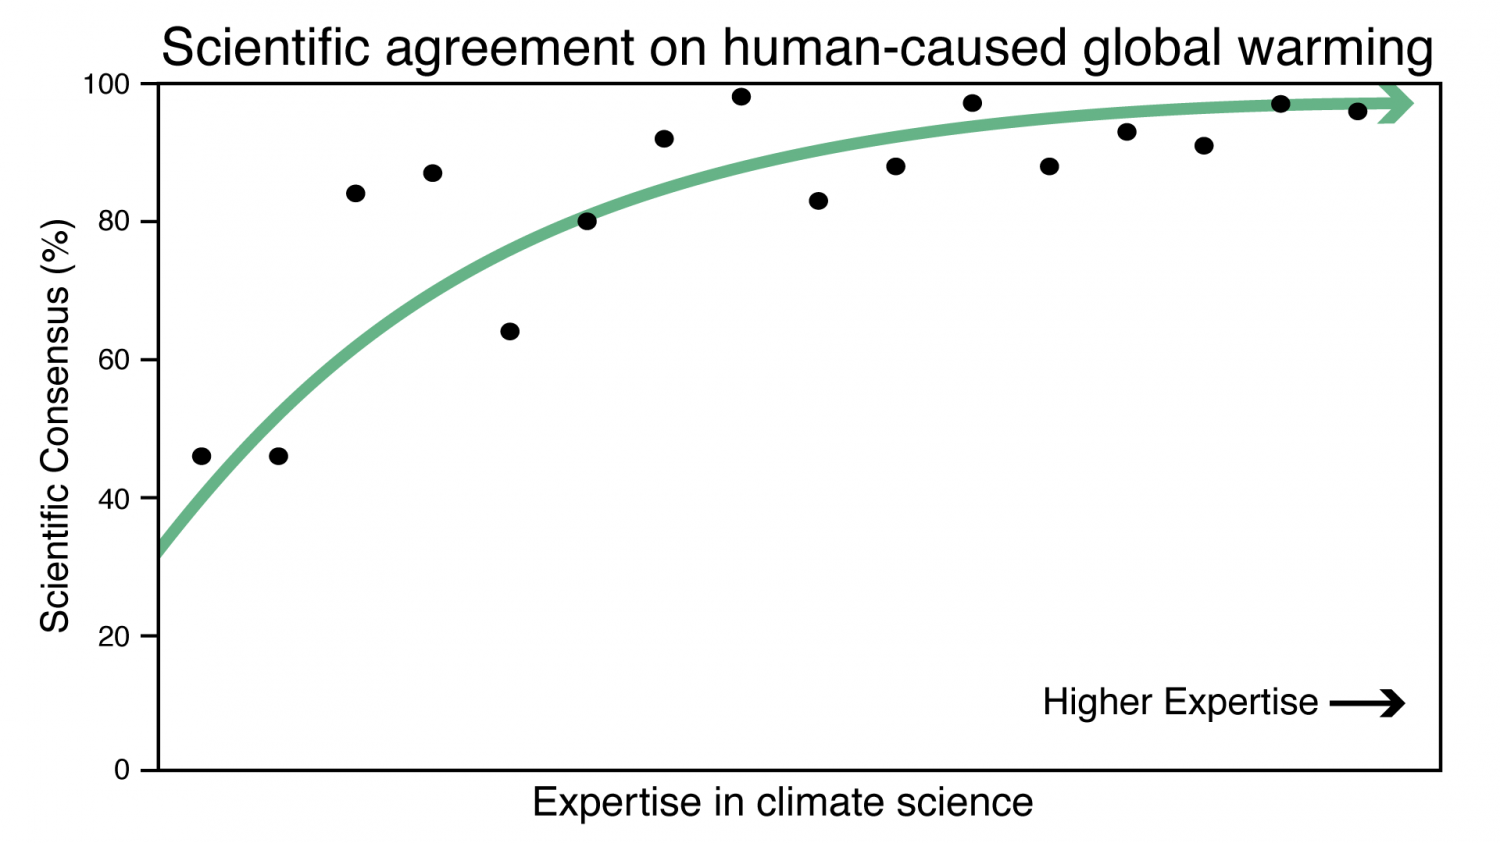 Consensus On Consensus Expertise Matters In Agreement Over Human